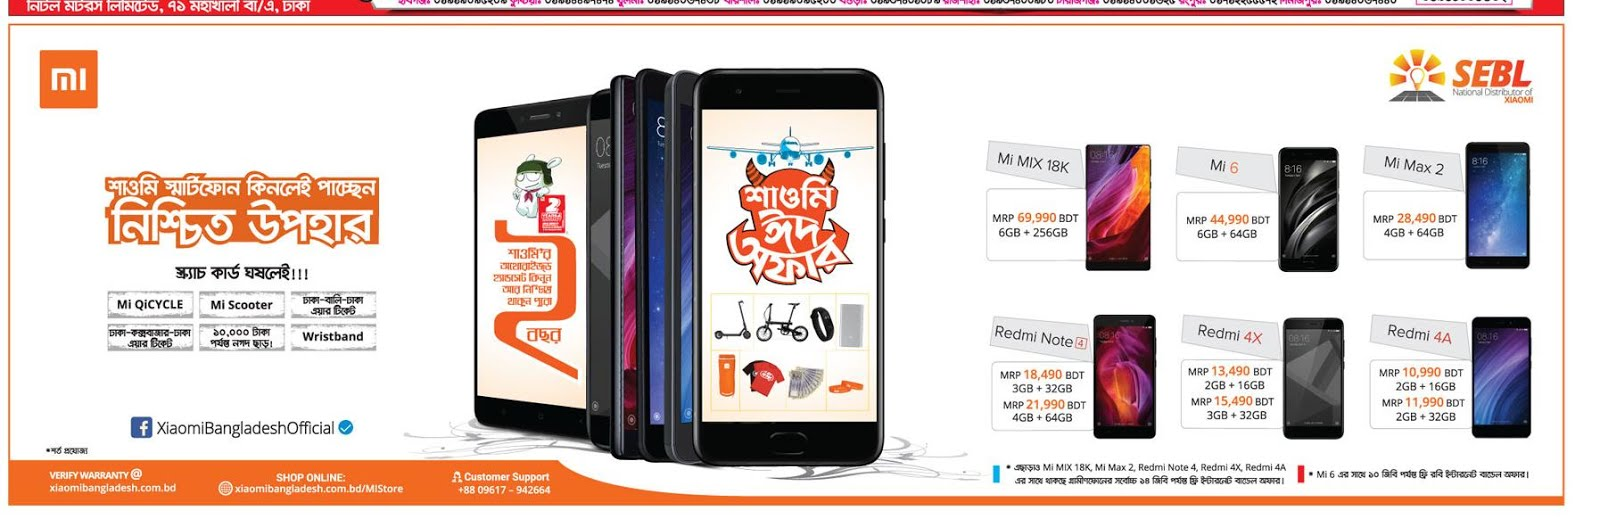 Xiaomi Smartphone Eid Offer 2017 in Bangladesh | Special Eid Offer of Xiaomi Smartphone in Bangladesh